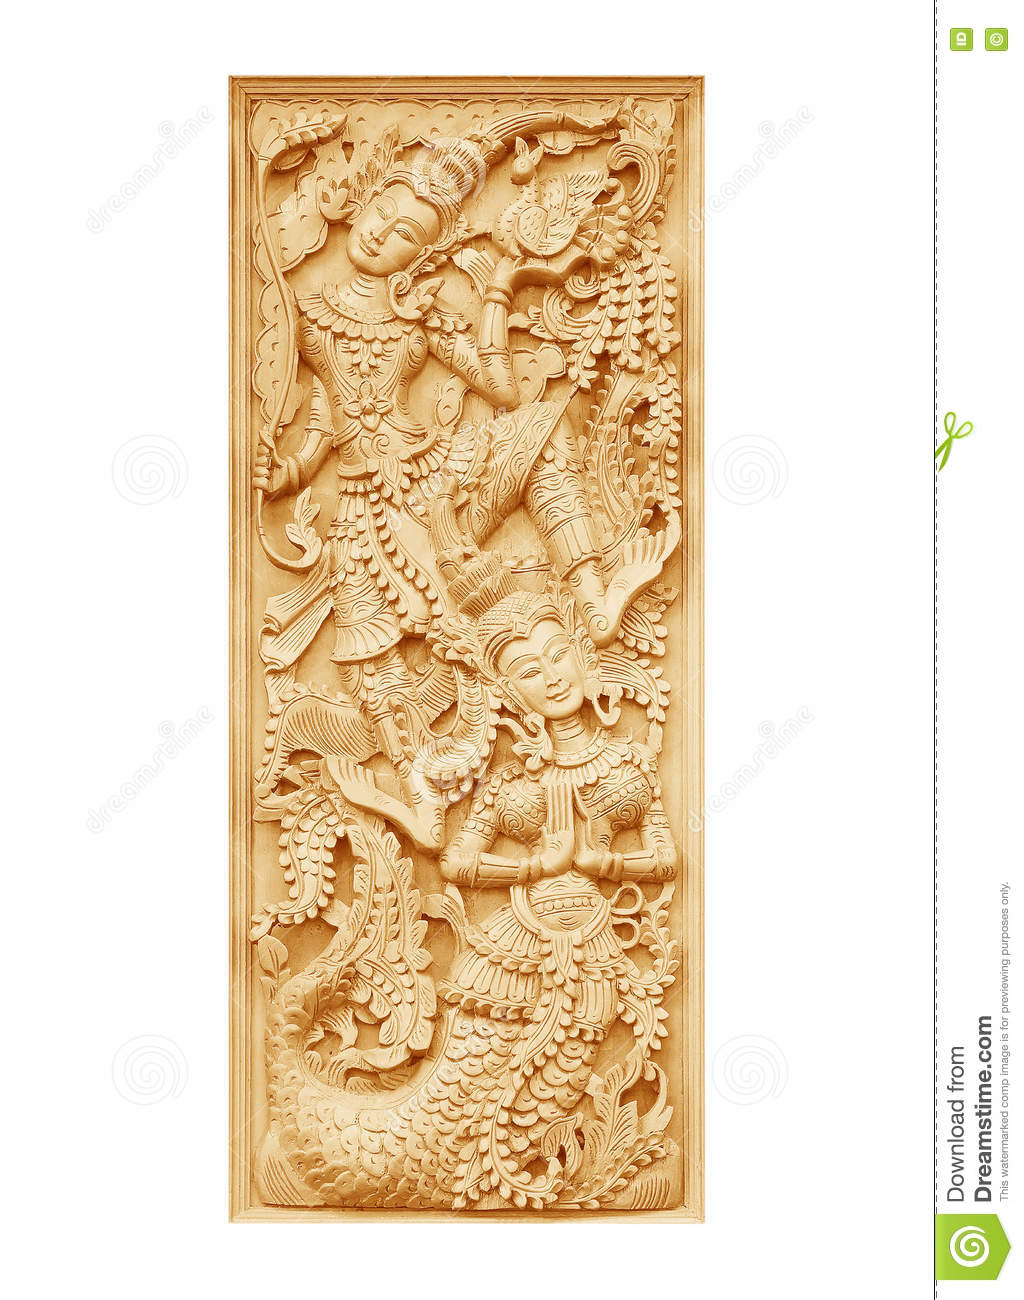 Wood Carving Buddhist Temple Door Stock Photo - Image of buddhism ...